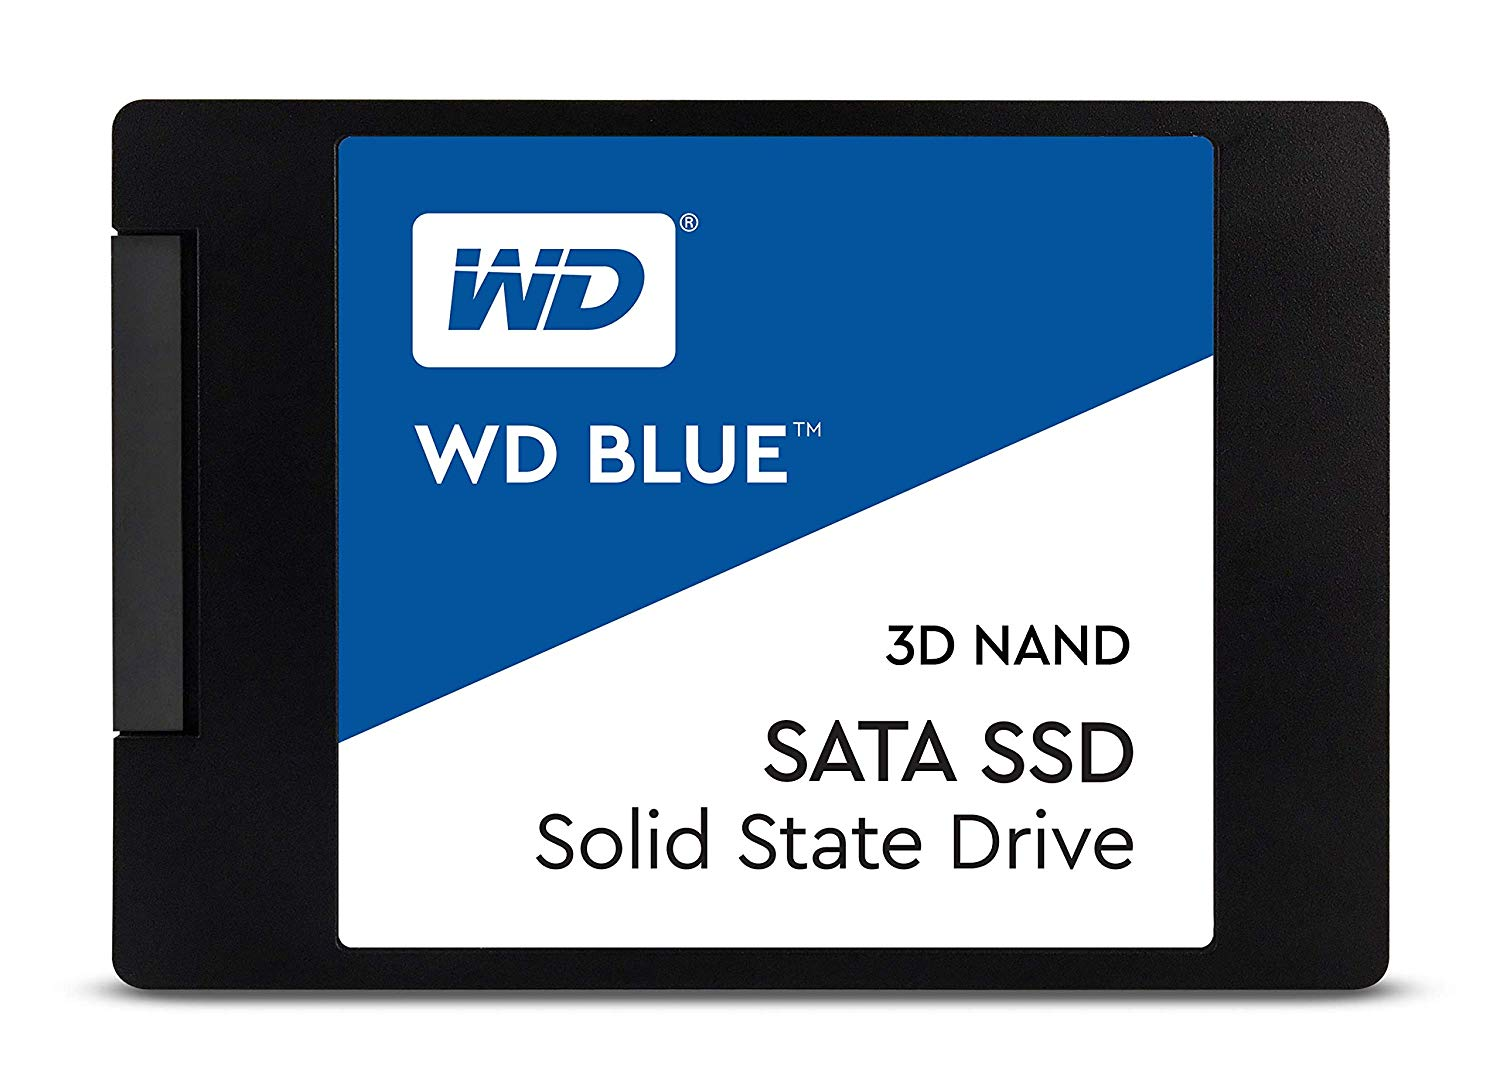 6 SSD WD Blue 3D NAND 1TB PC SSD - Best $1500 PC Build 2019